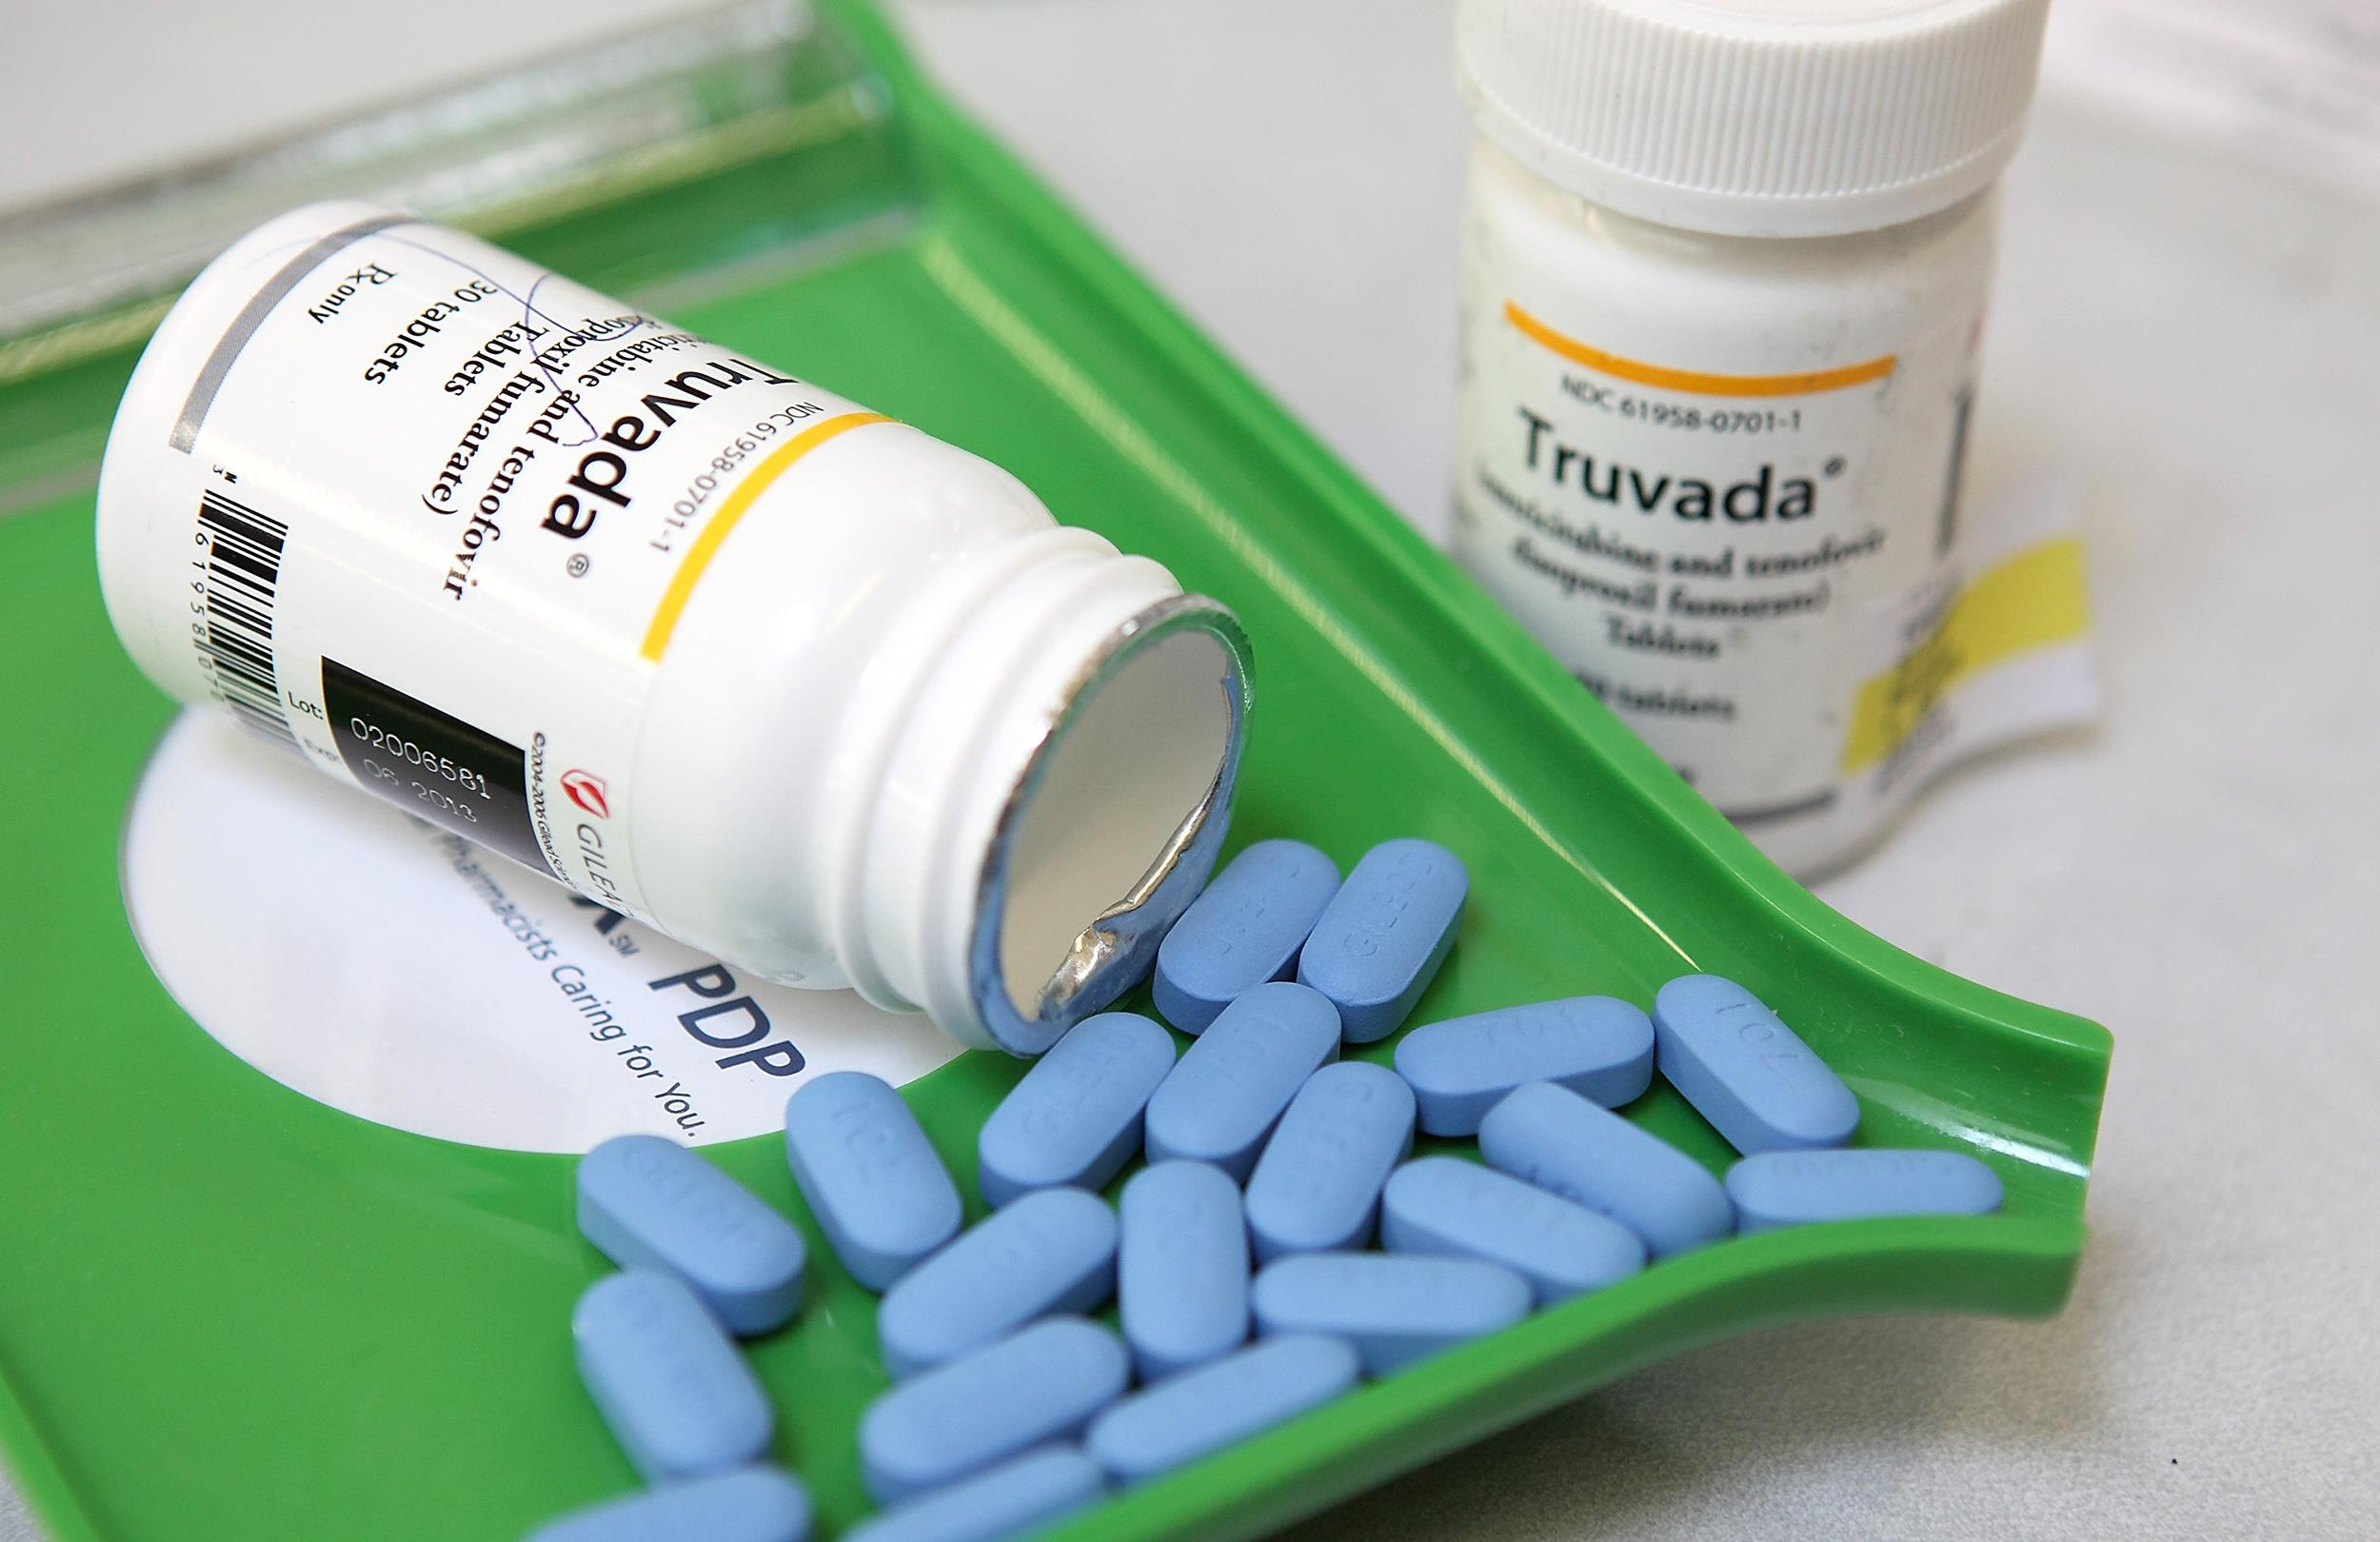 Image: Bottles of antiretroviral drug Truvada